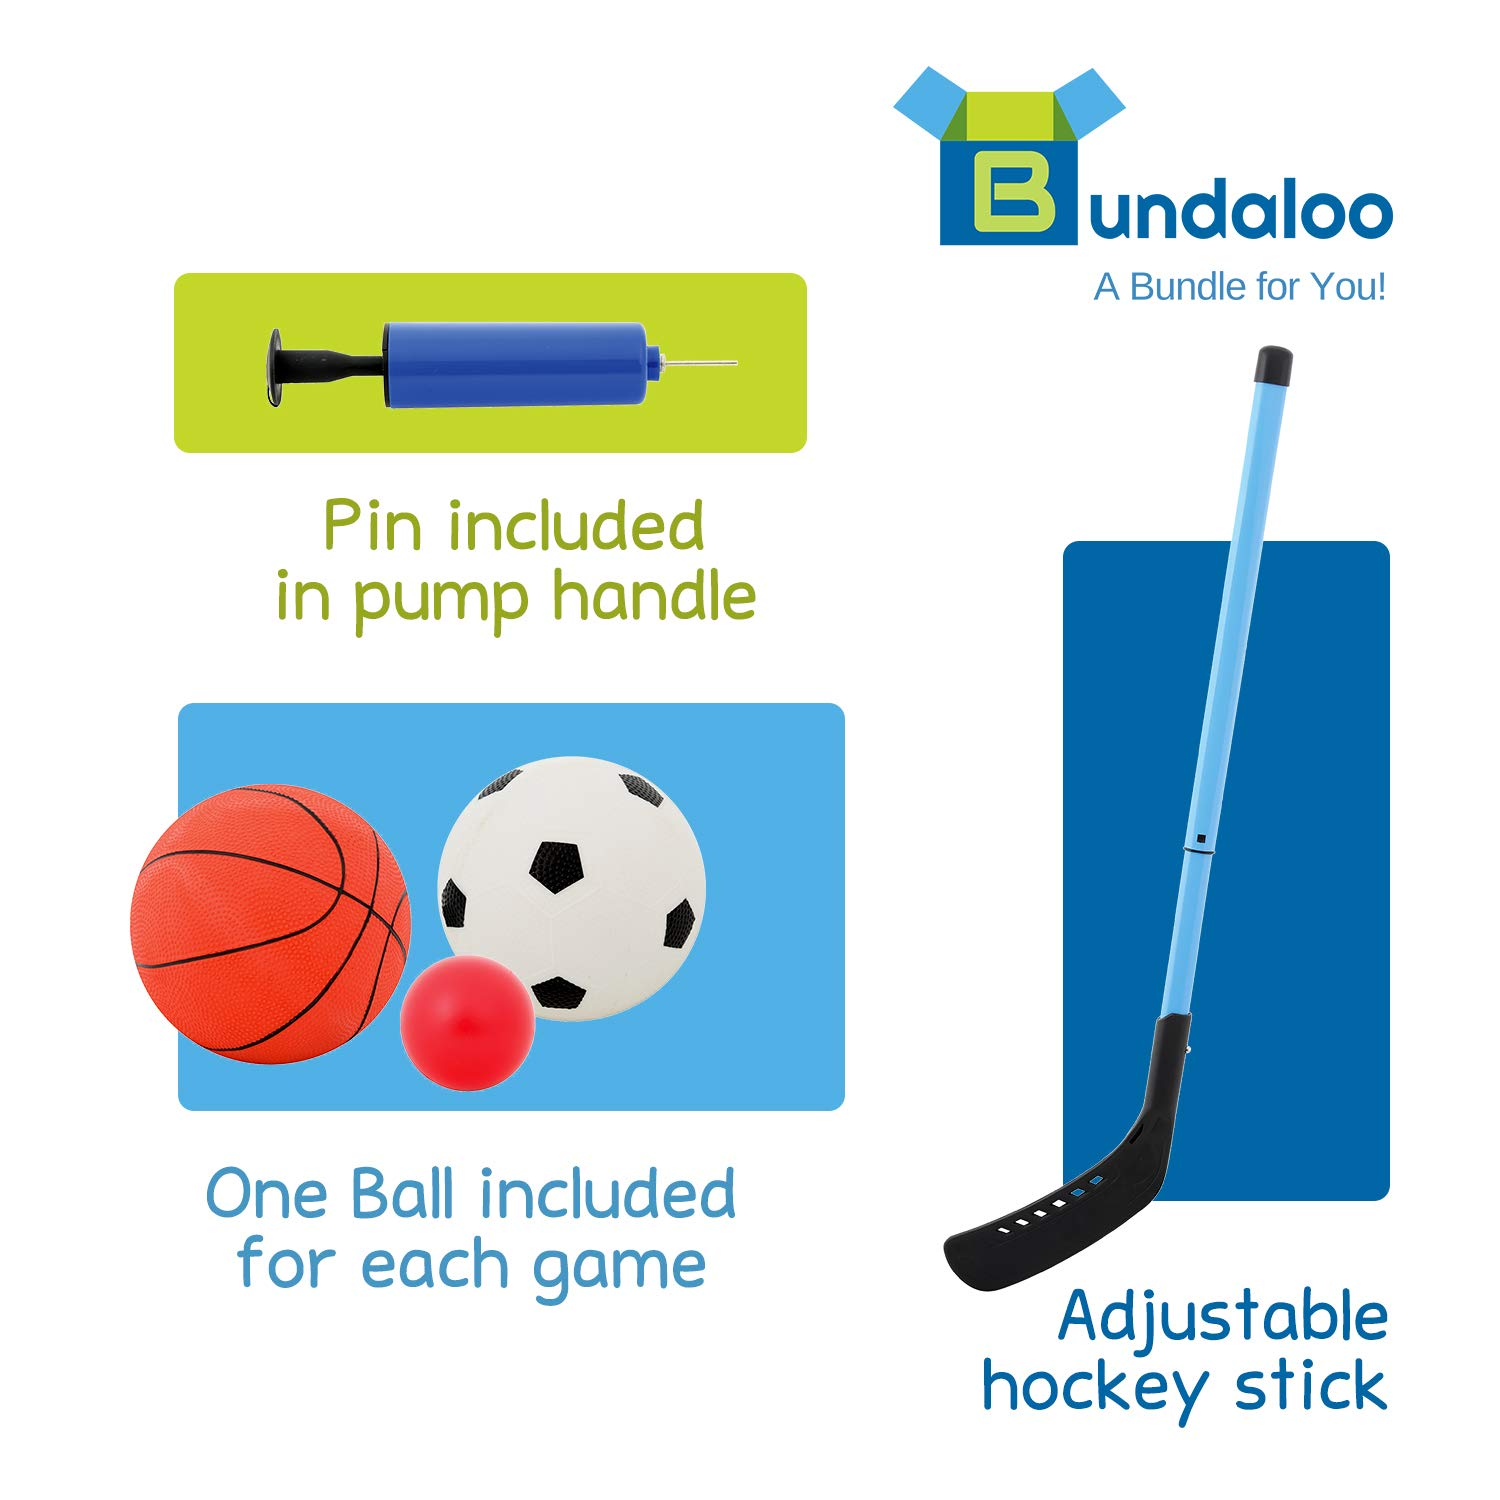 Bundaloo 3 in 1 Arcade Game | Basketball, Soccer, and Hockey Kids Toys | Fun Outdoor and Indoor Ball Games for Boys, Girls, Toddler | Includes 3 Balls, Backboard Hoop, Net Goal, Stick, and Air Pump by Bundaloo (Image #6)